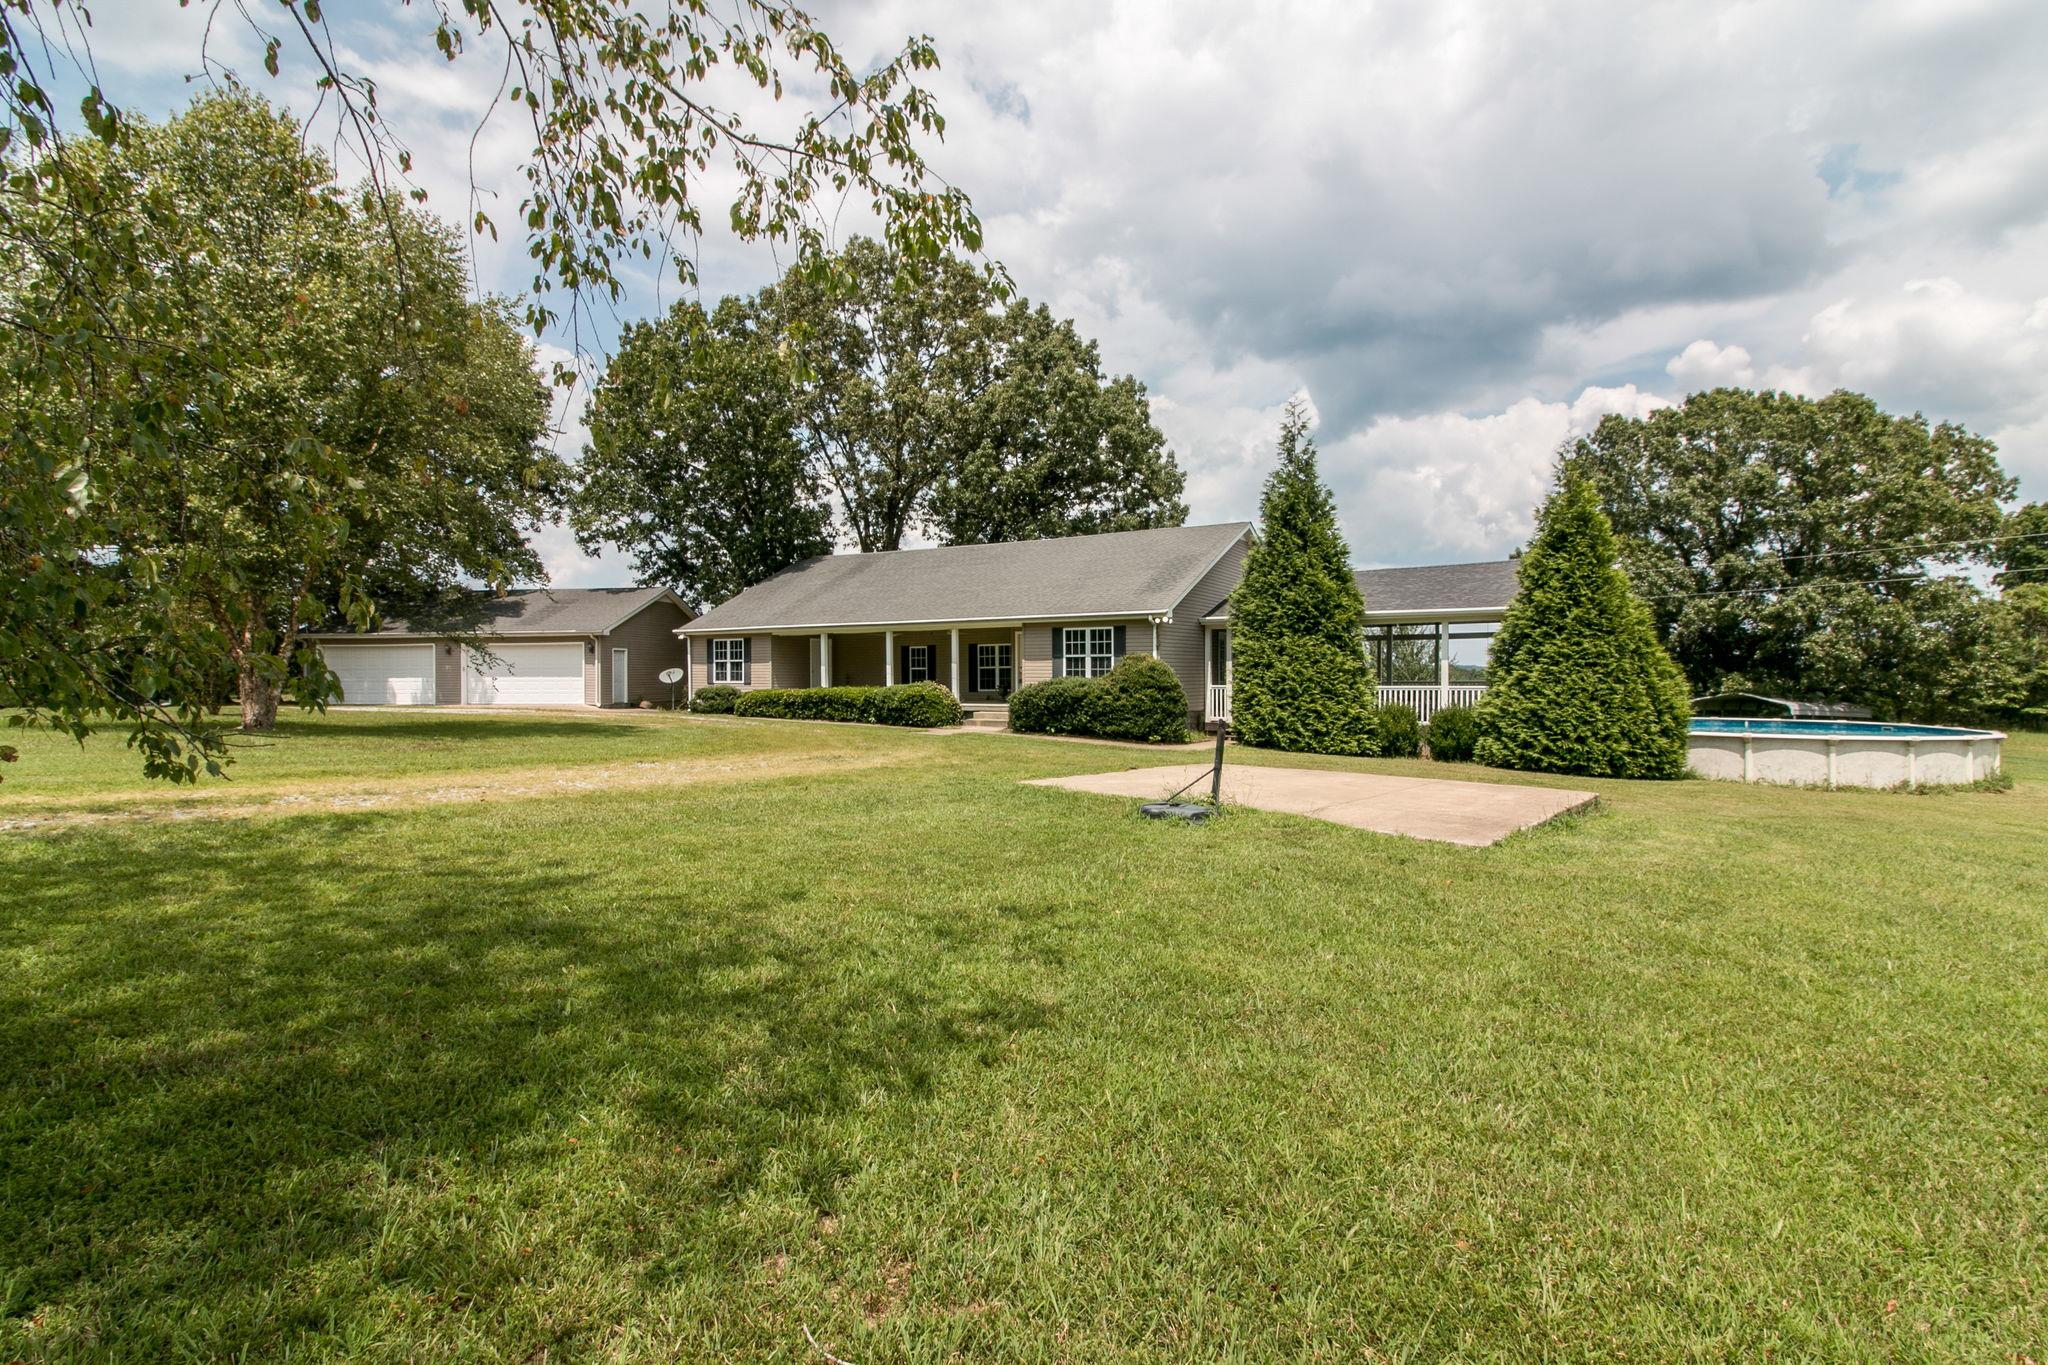 2121 Gamble Hollow Rd, Cumberland Furnace, TN 37051 - Cumberland Furnace, TN real estate listing